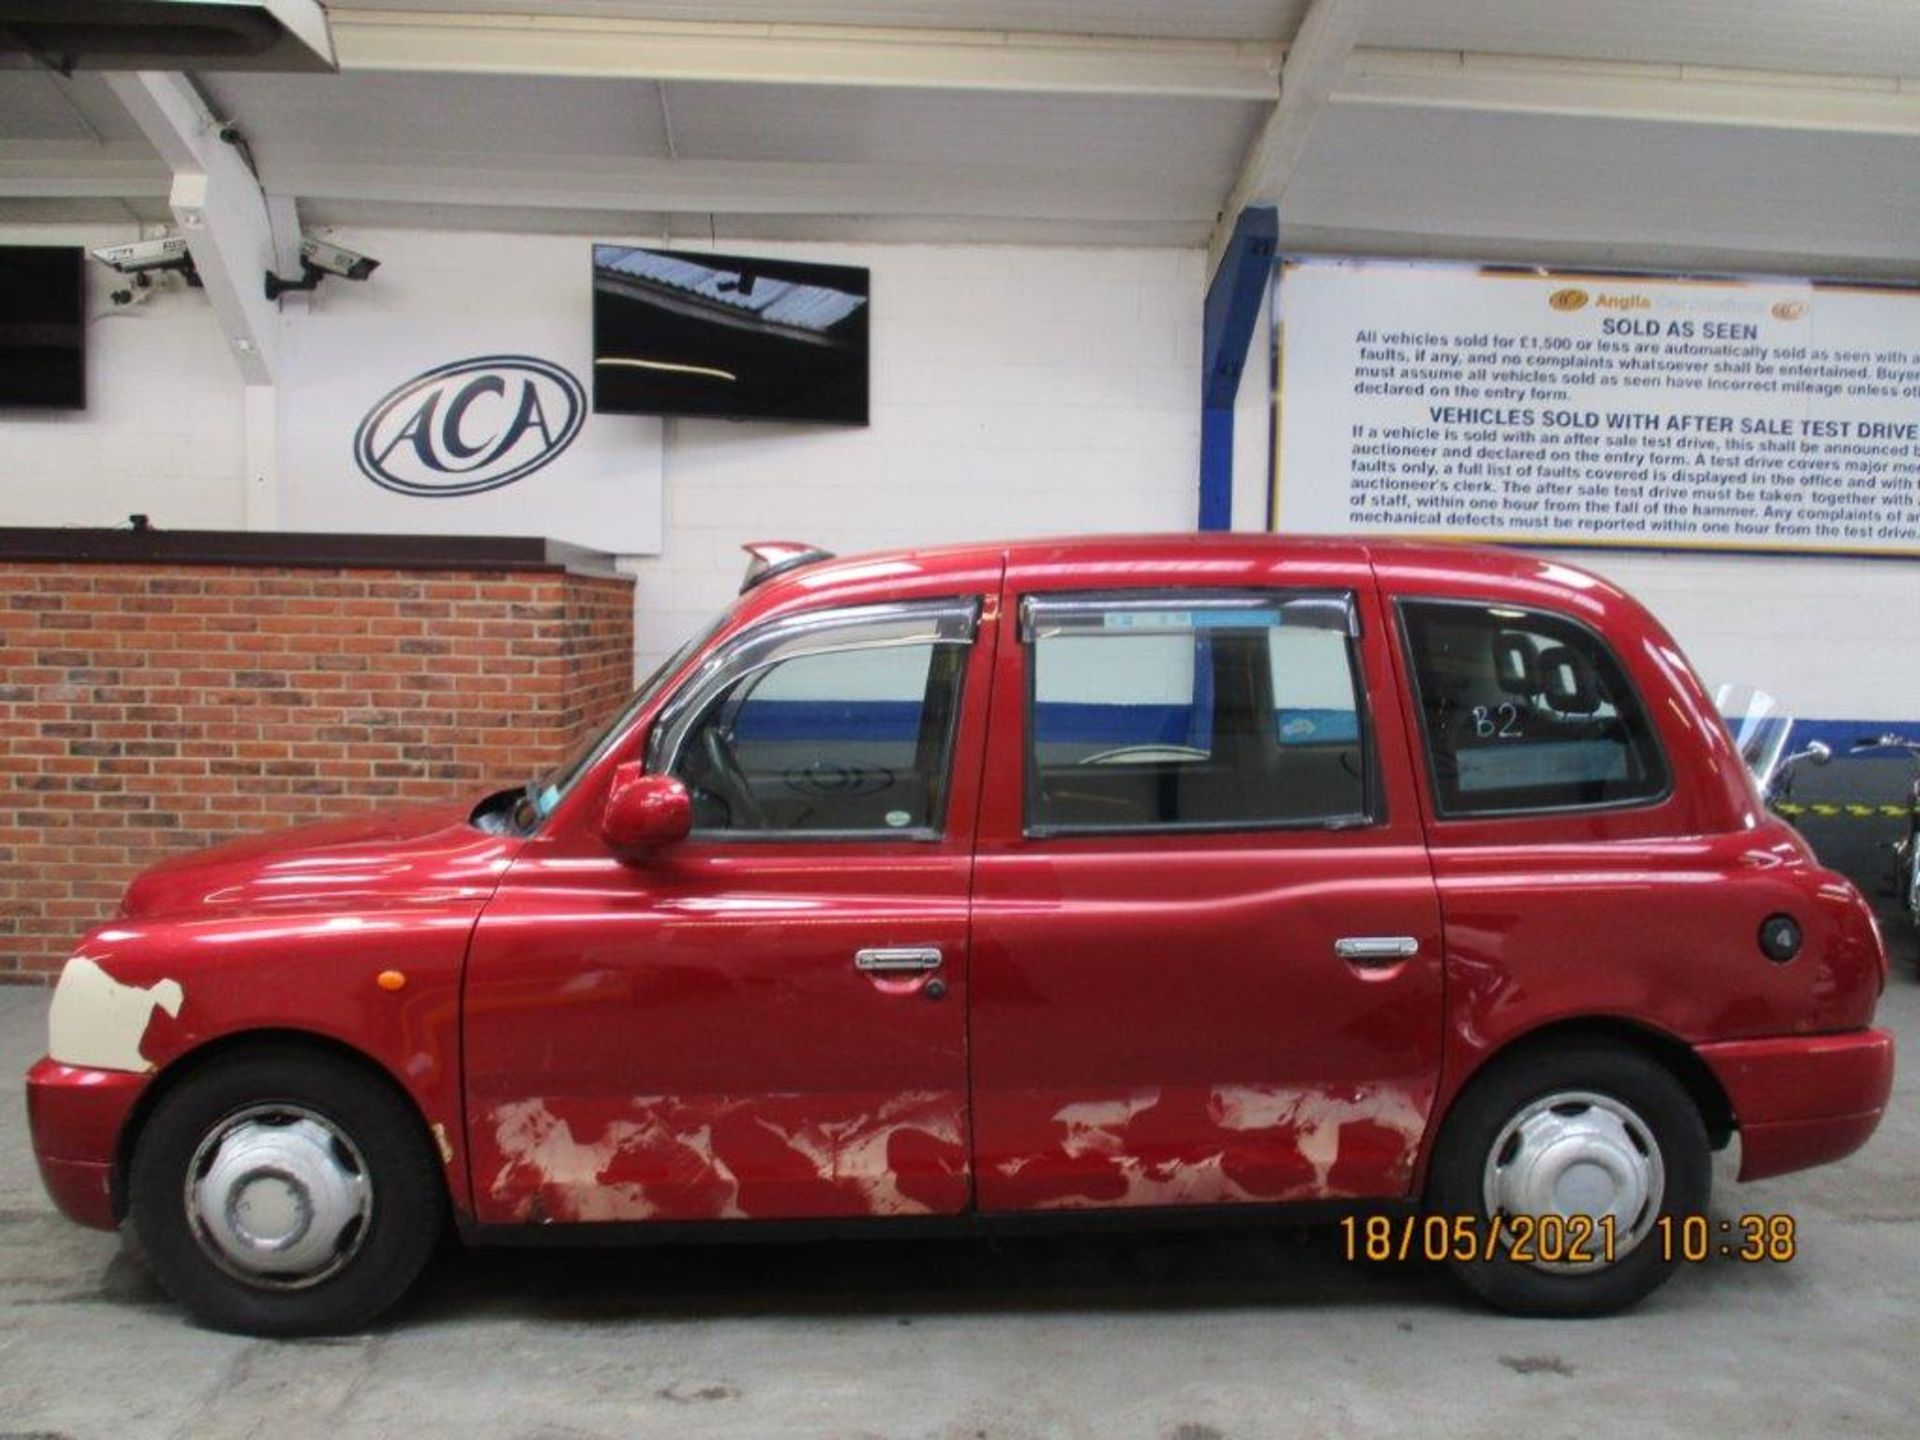 07 07 London Taxis Int TX4 Silver - Image 2 of 20